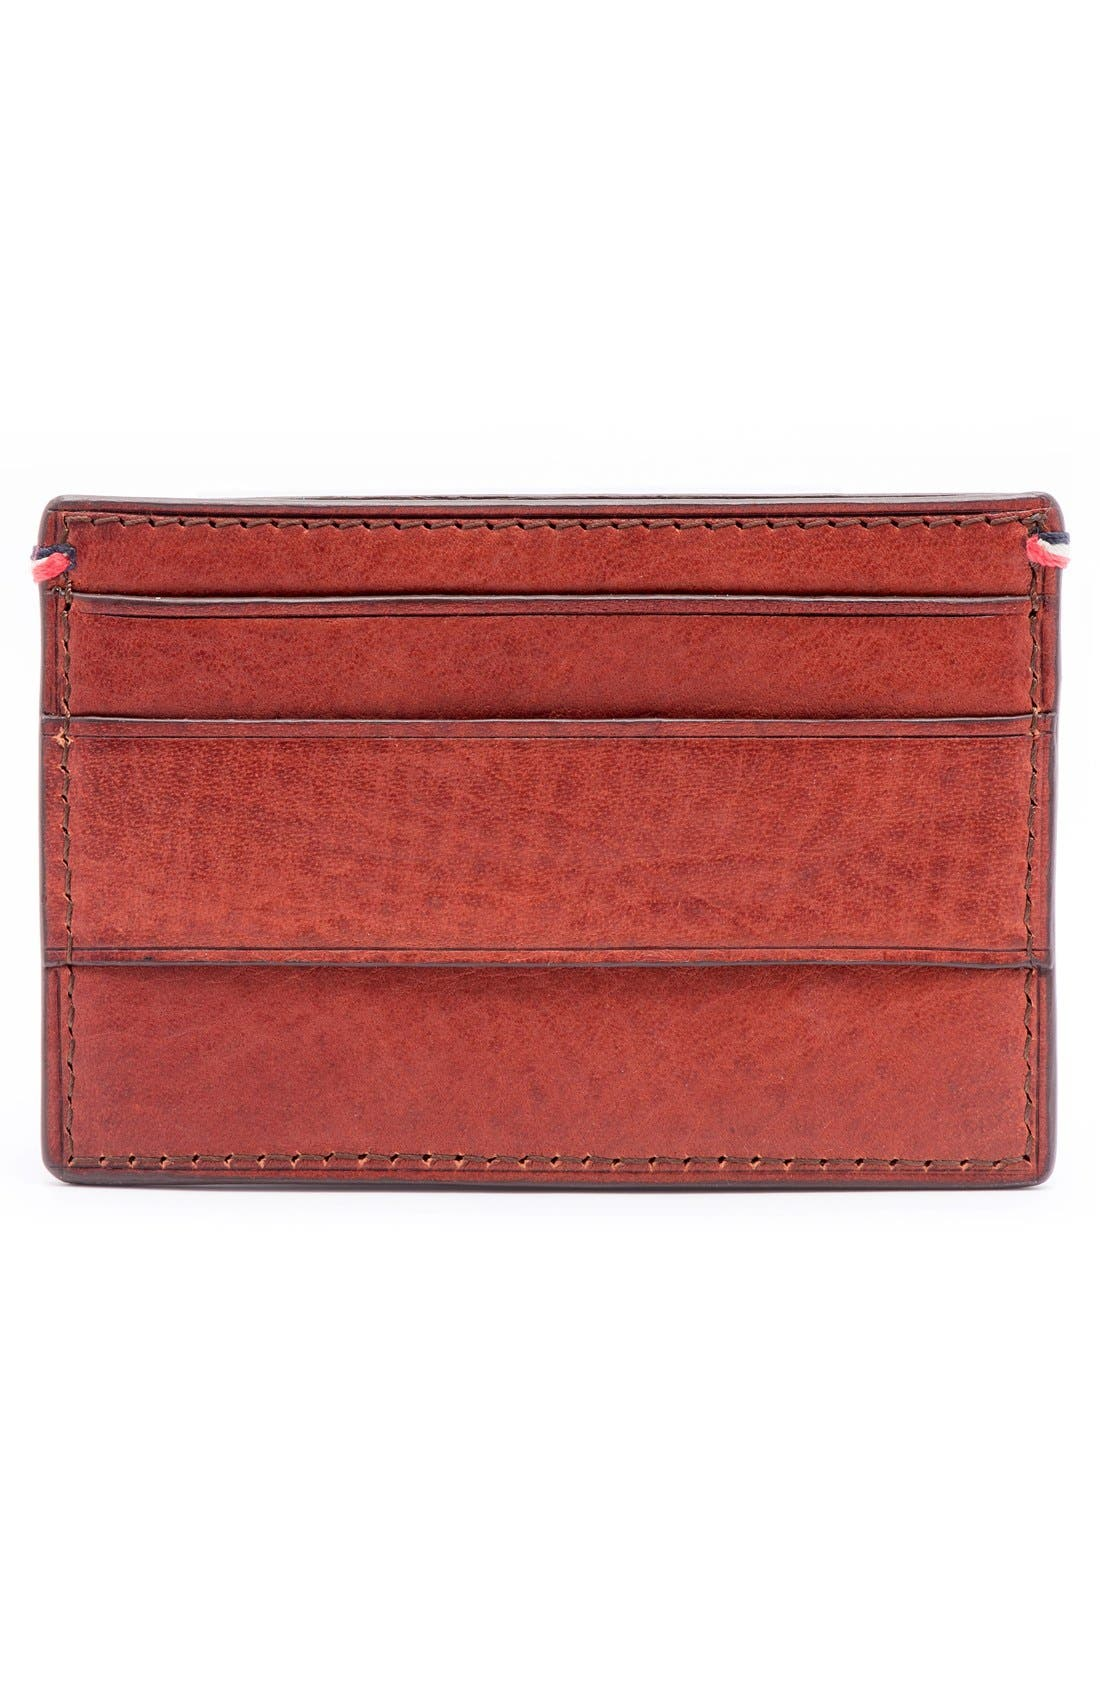 Pebbled Leather Card Case,                             Alternate thumbnail 2, color,                             800